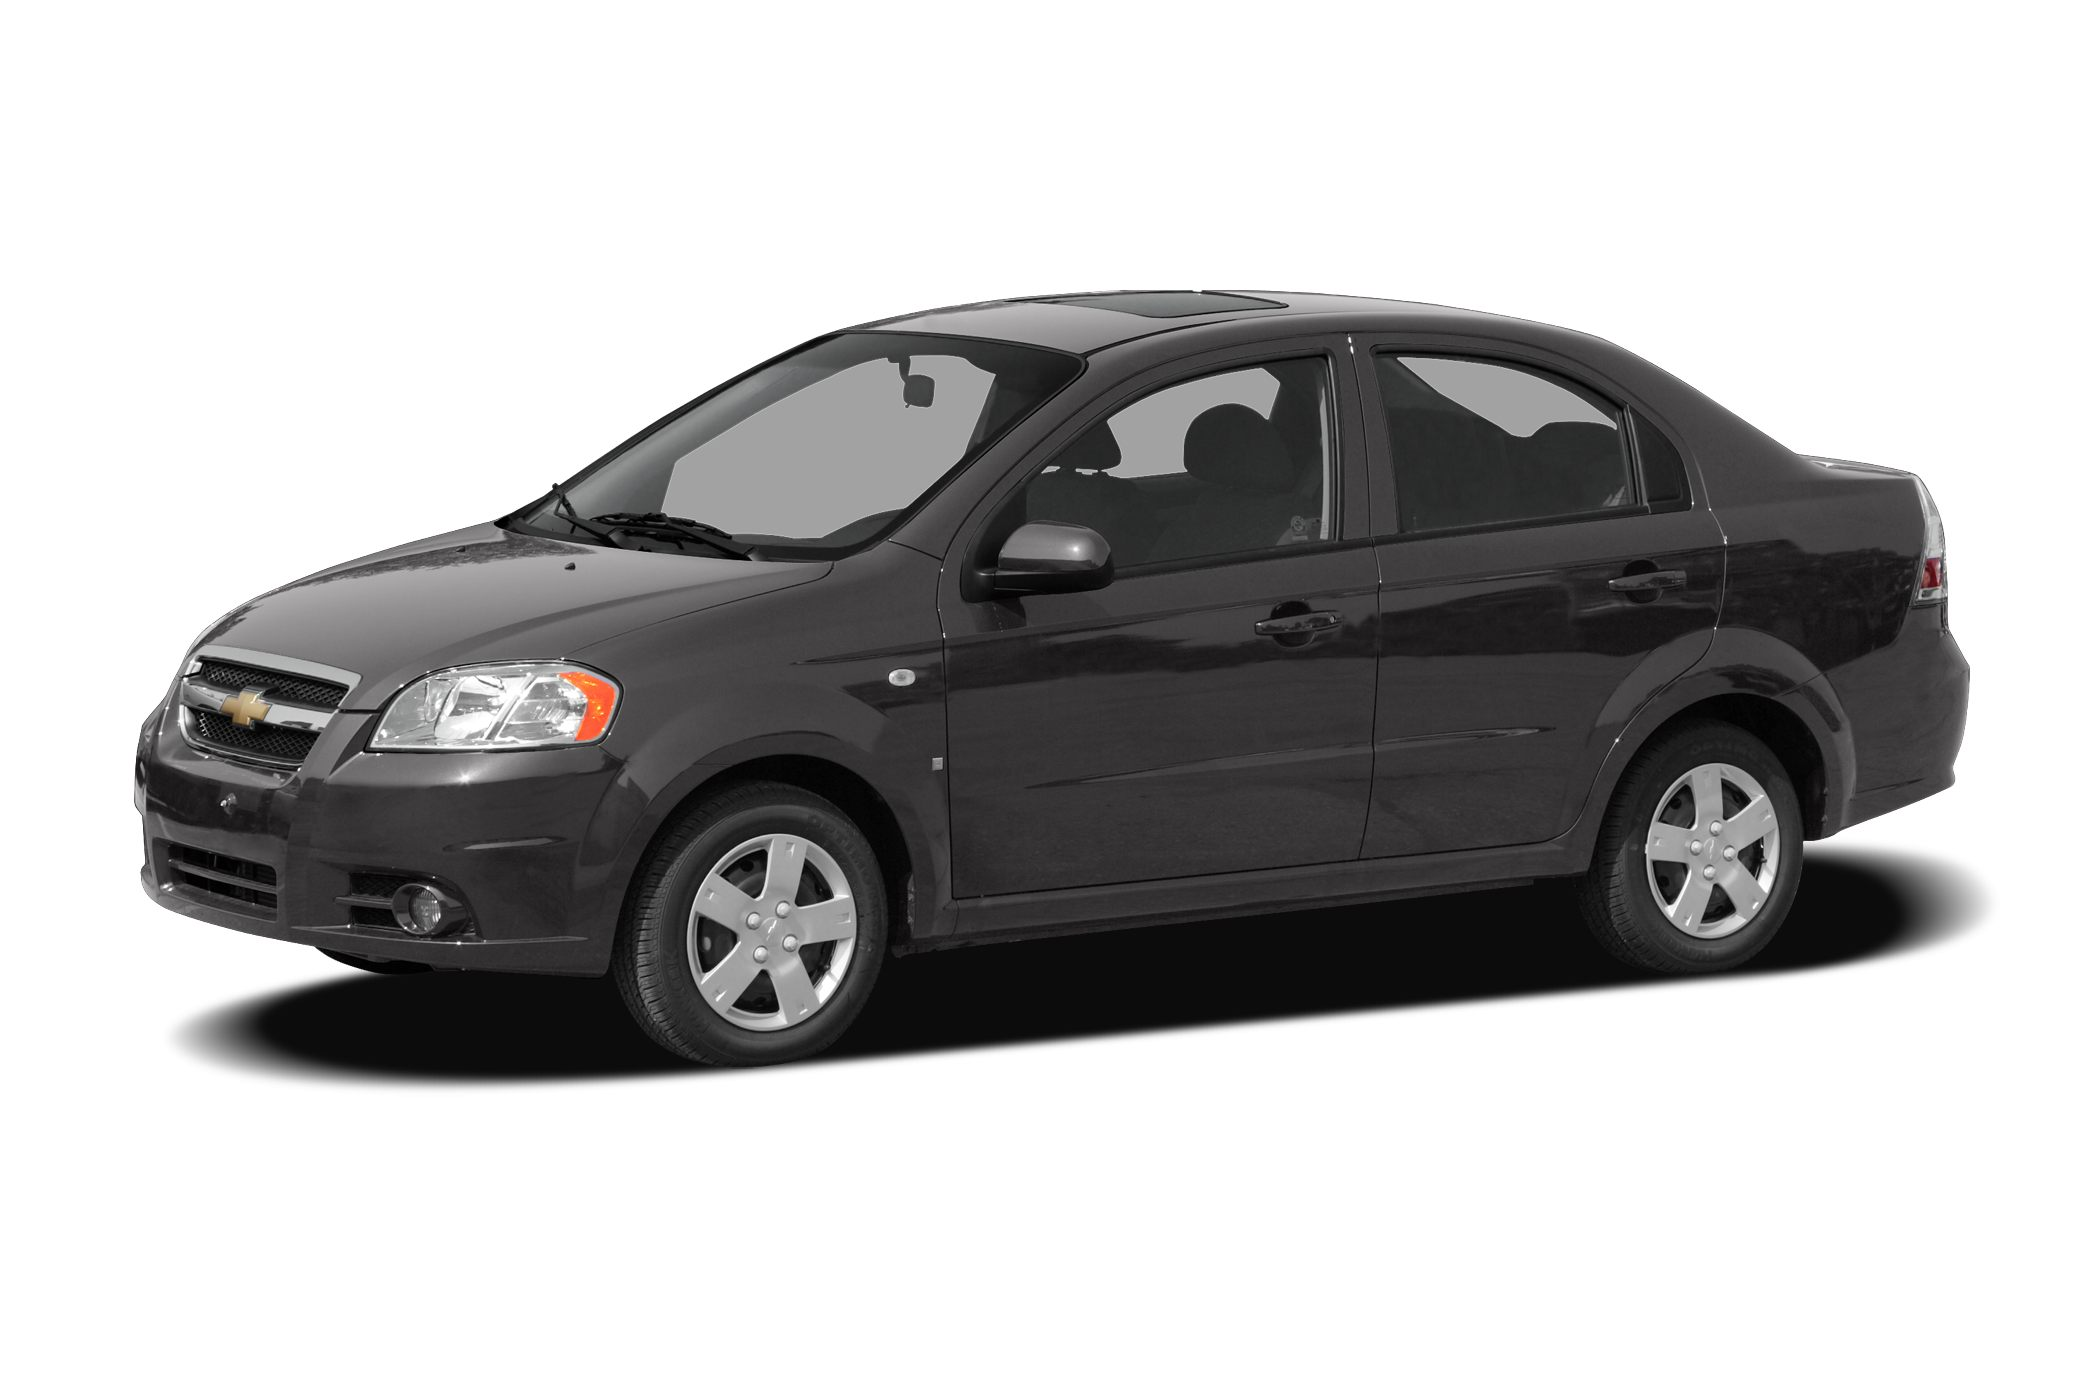 2008 Chevrolet Aveo LT Win a bargain on this 2008 Chevrolet Aveo LT before someone else takes it h